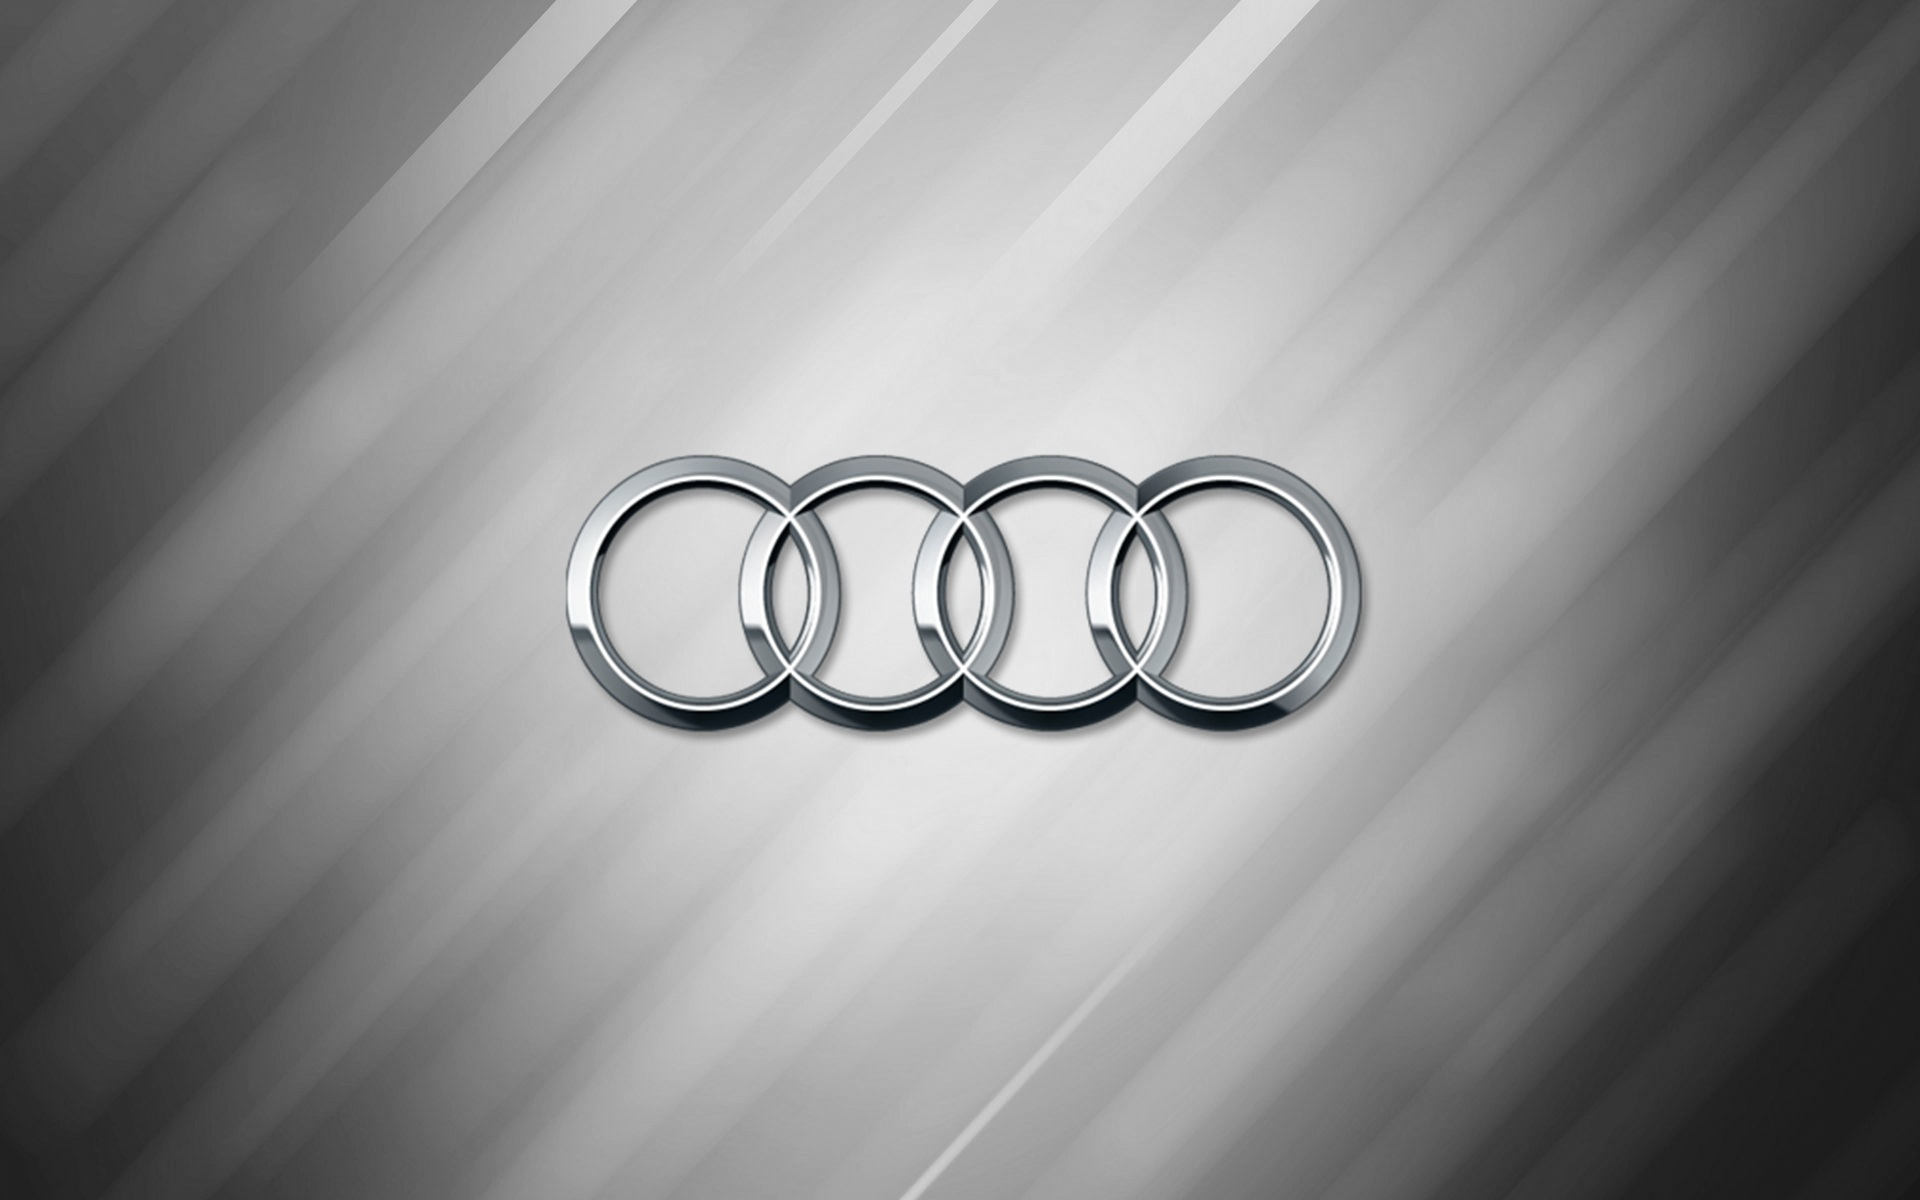 Audi q7 hd wallpaper download